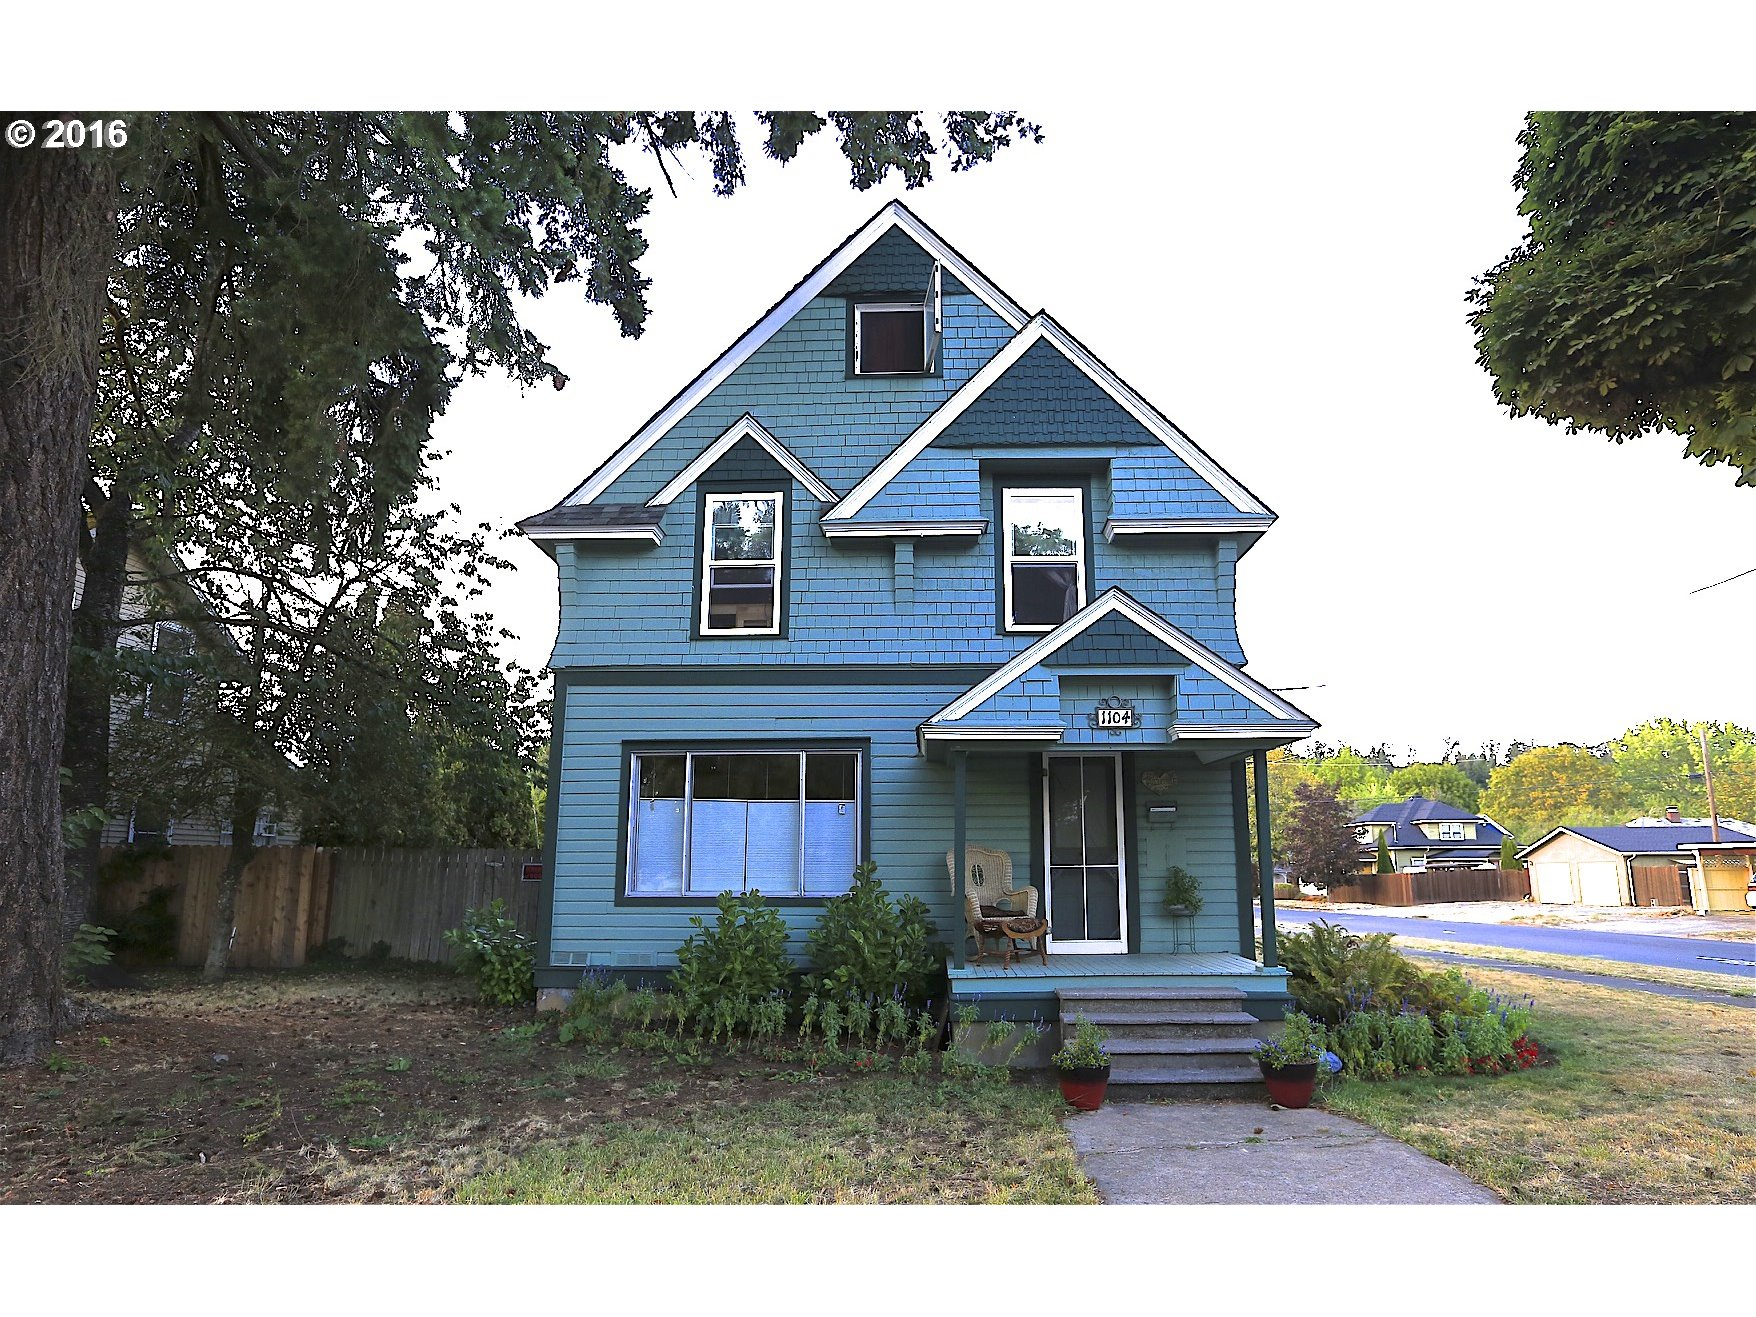 1104 W MAIN ST, Cottage Grove OR 97424